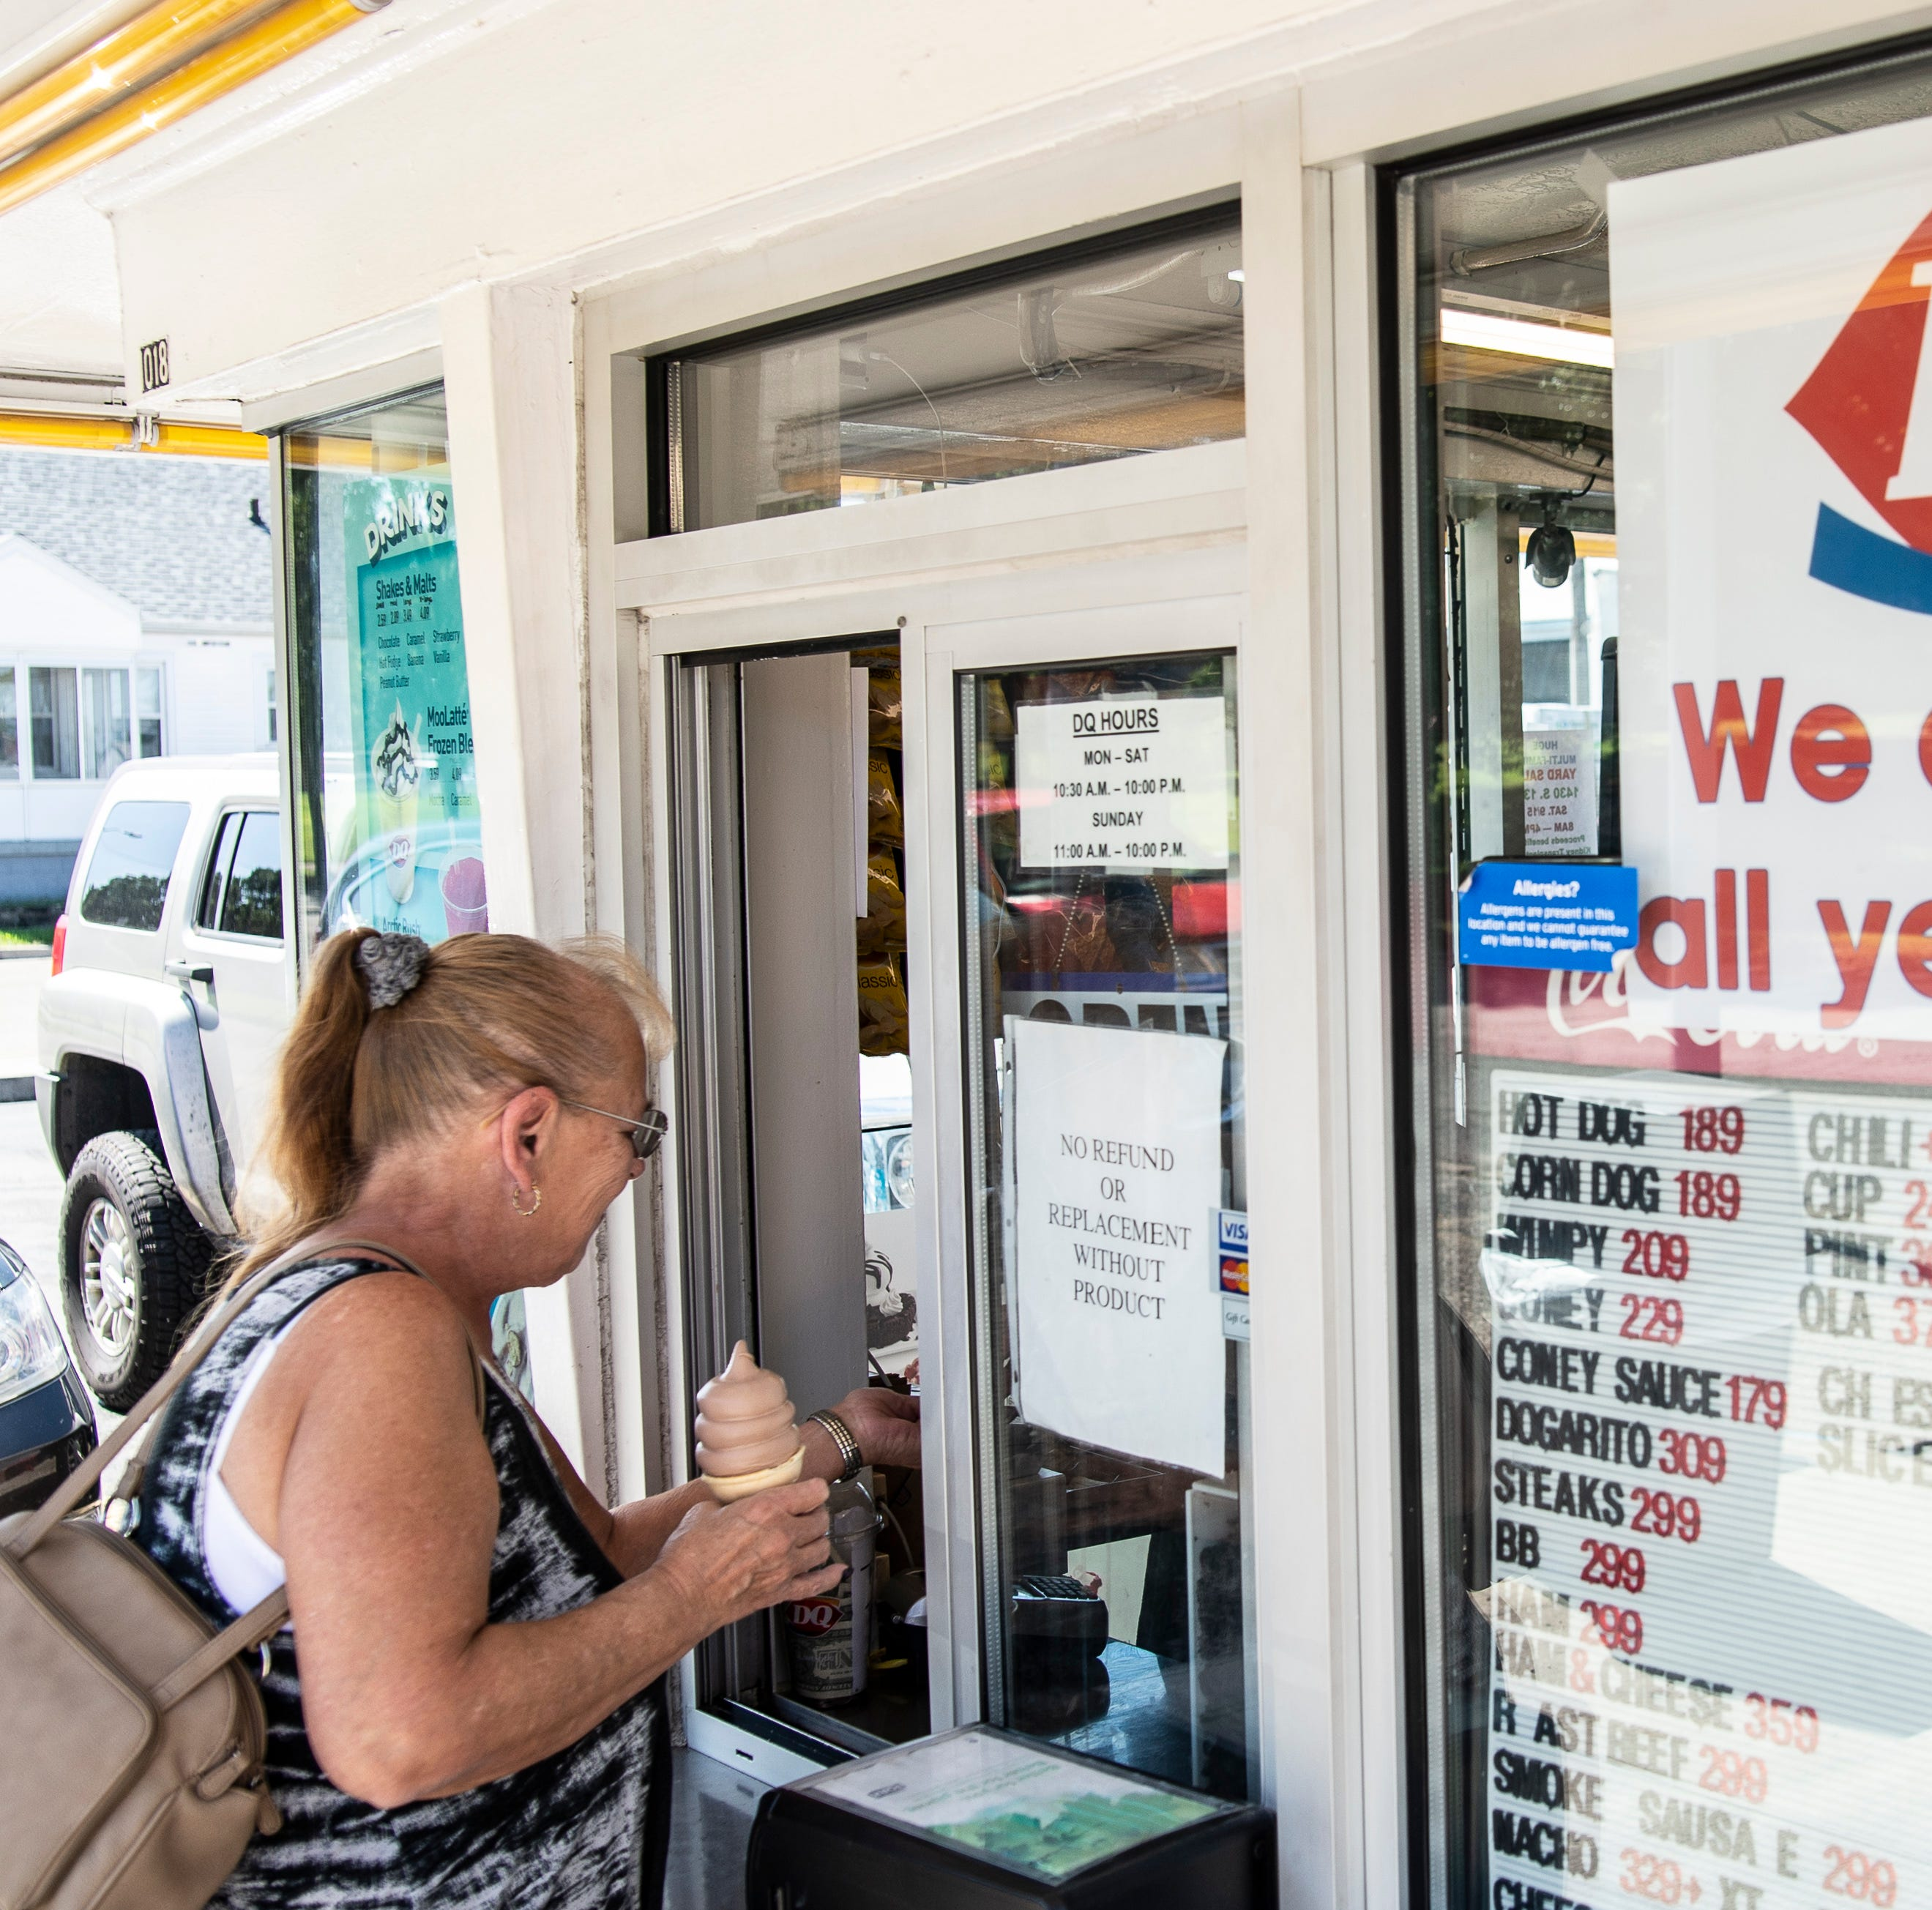 When is Richmond's Dairy Queen open? Now, DQ staying open all year